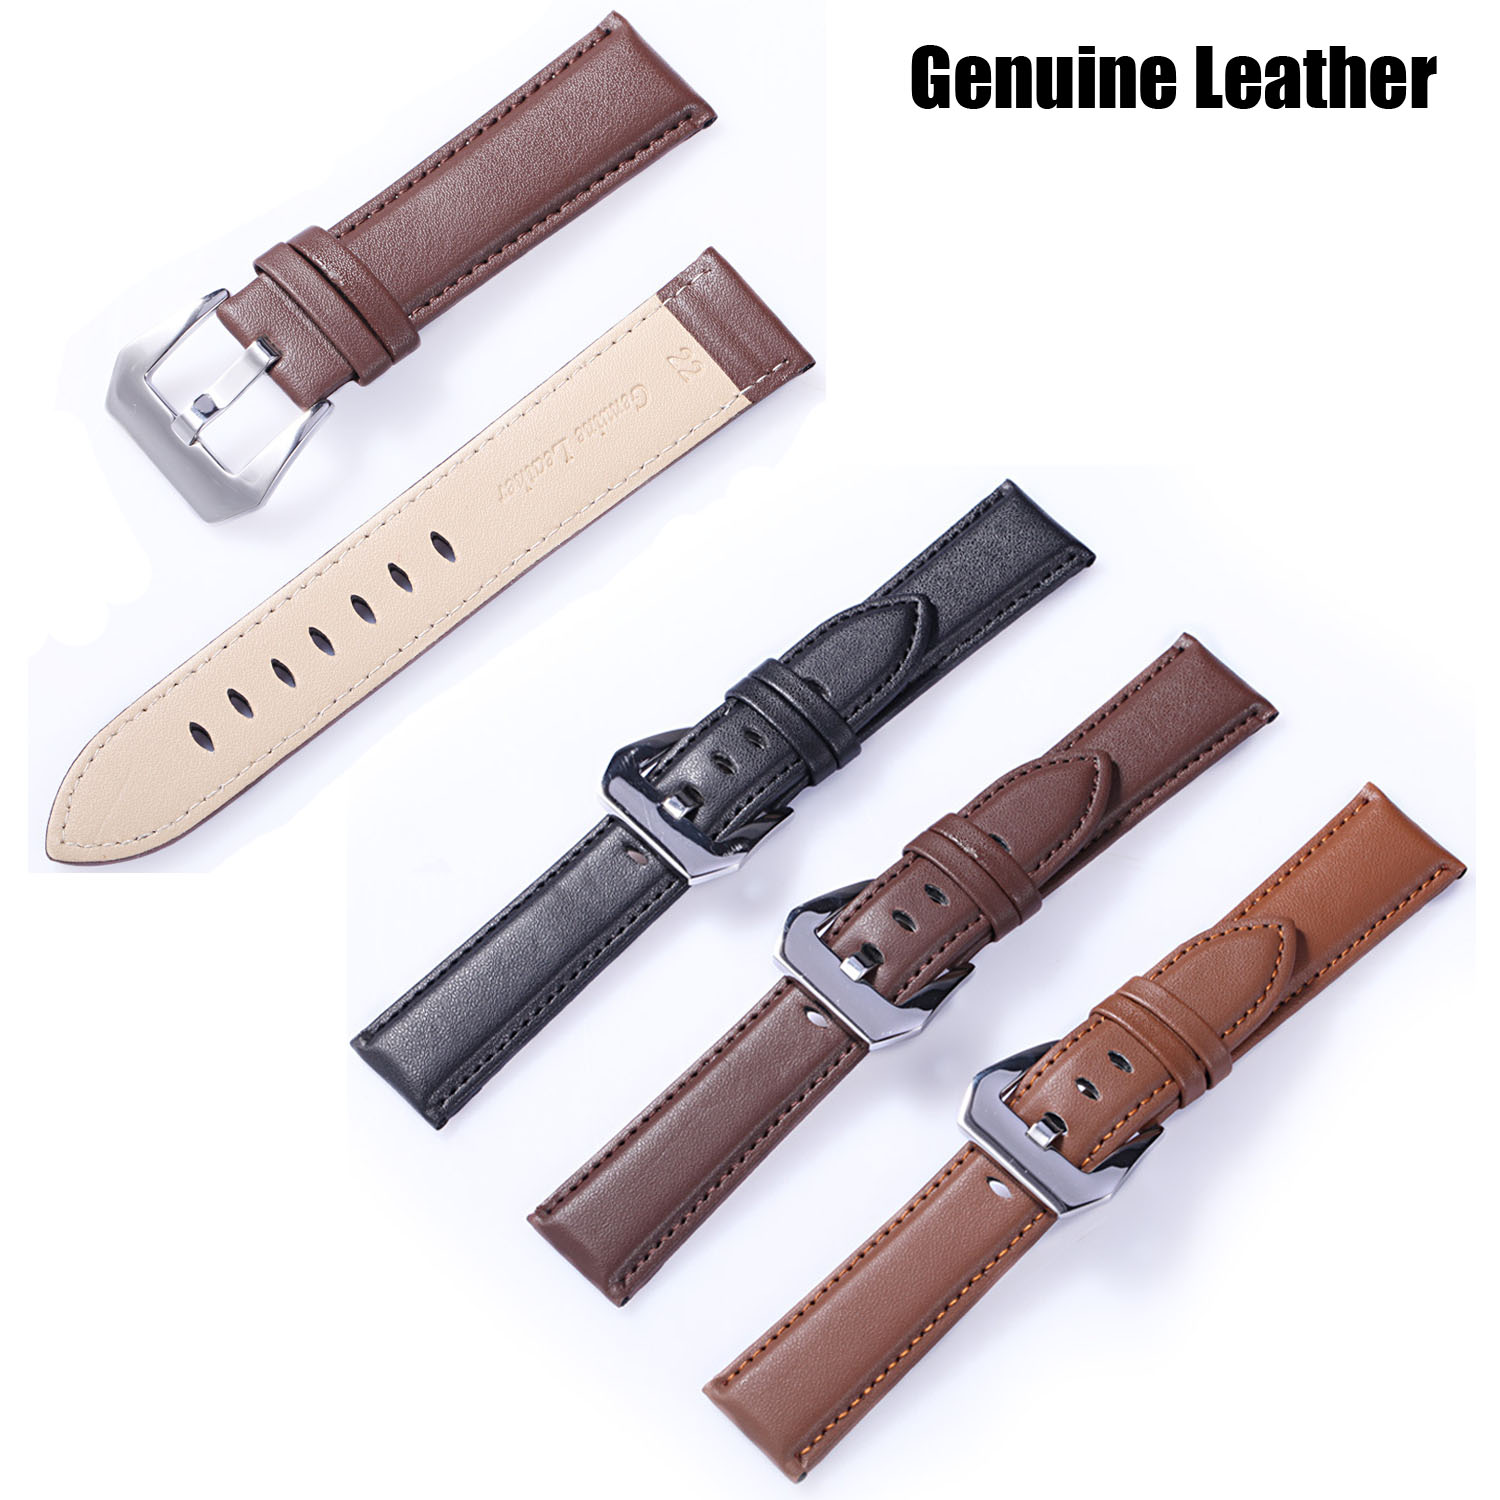 Wholesale 20mm 22mm 24mm Genuine Leather Watch Band Cowhide Strap with Metal Buckle Women & Men's Belt Black Brown Coffee  20mm 22mm 24mm genuine leather watch band strap watch with black buckles black